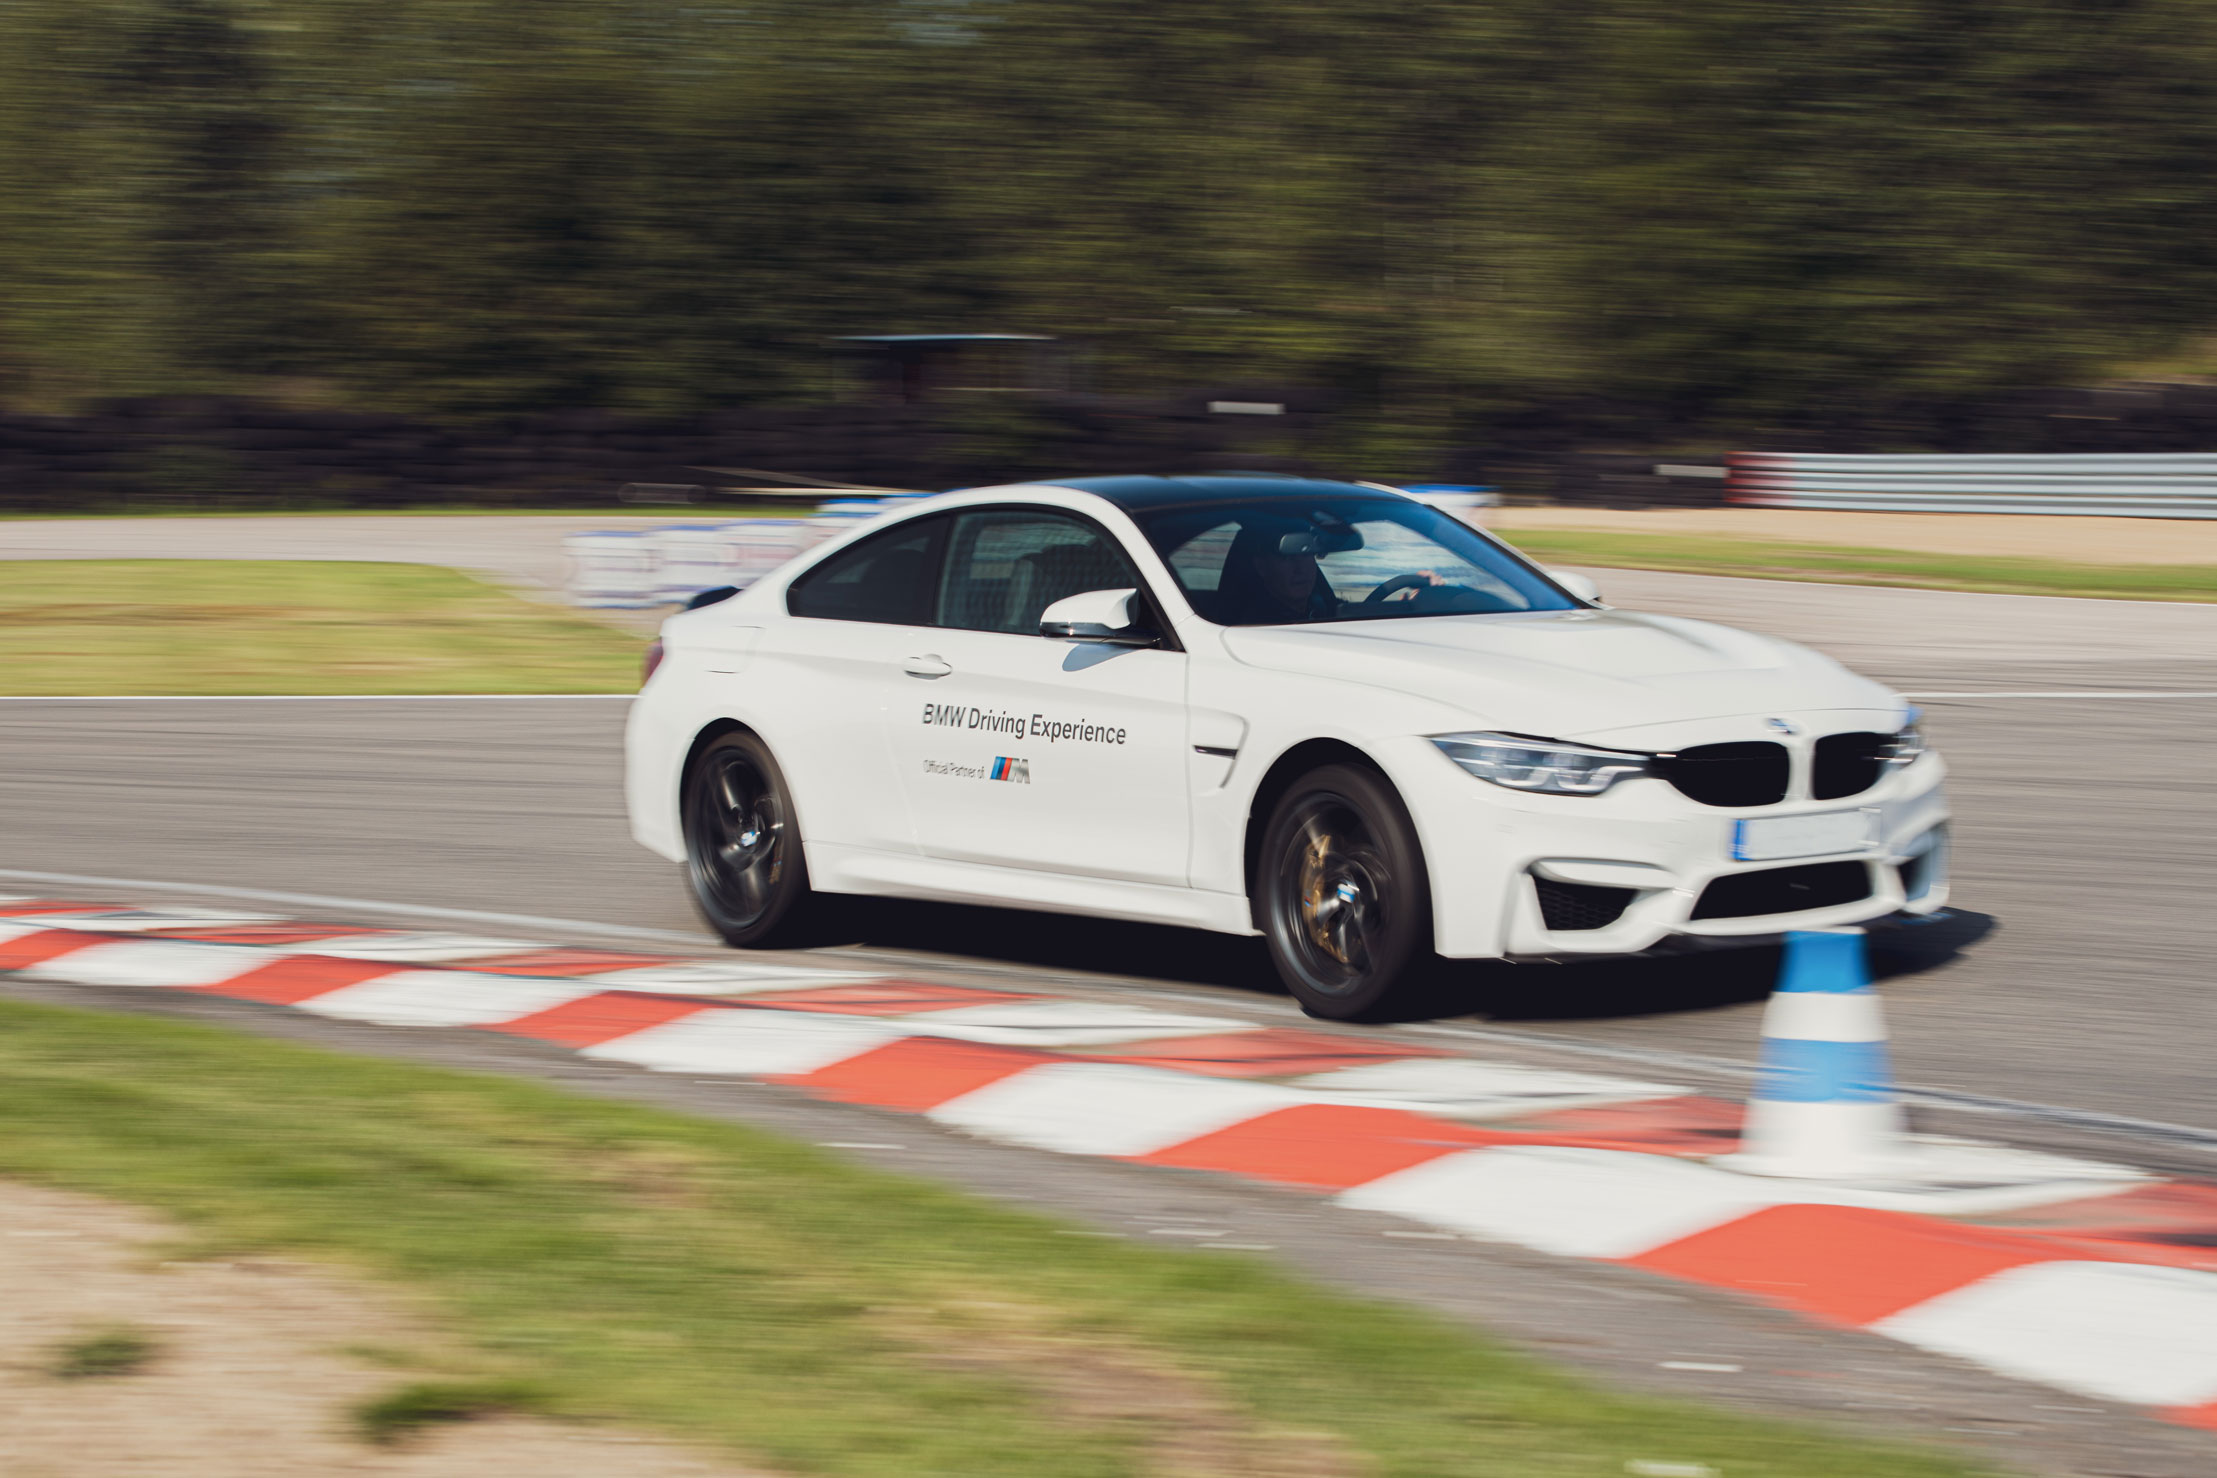 BMW Group Driving Experience Elite Studio